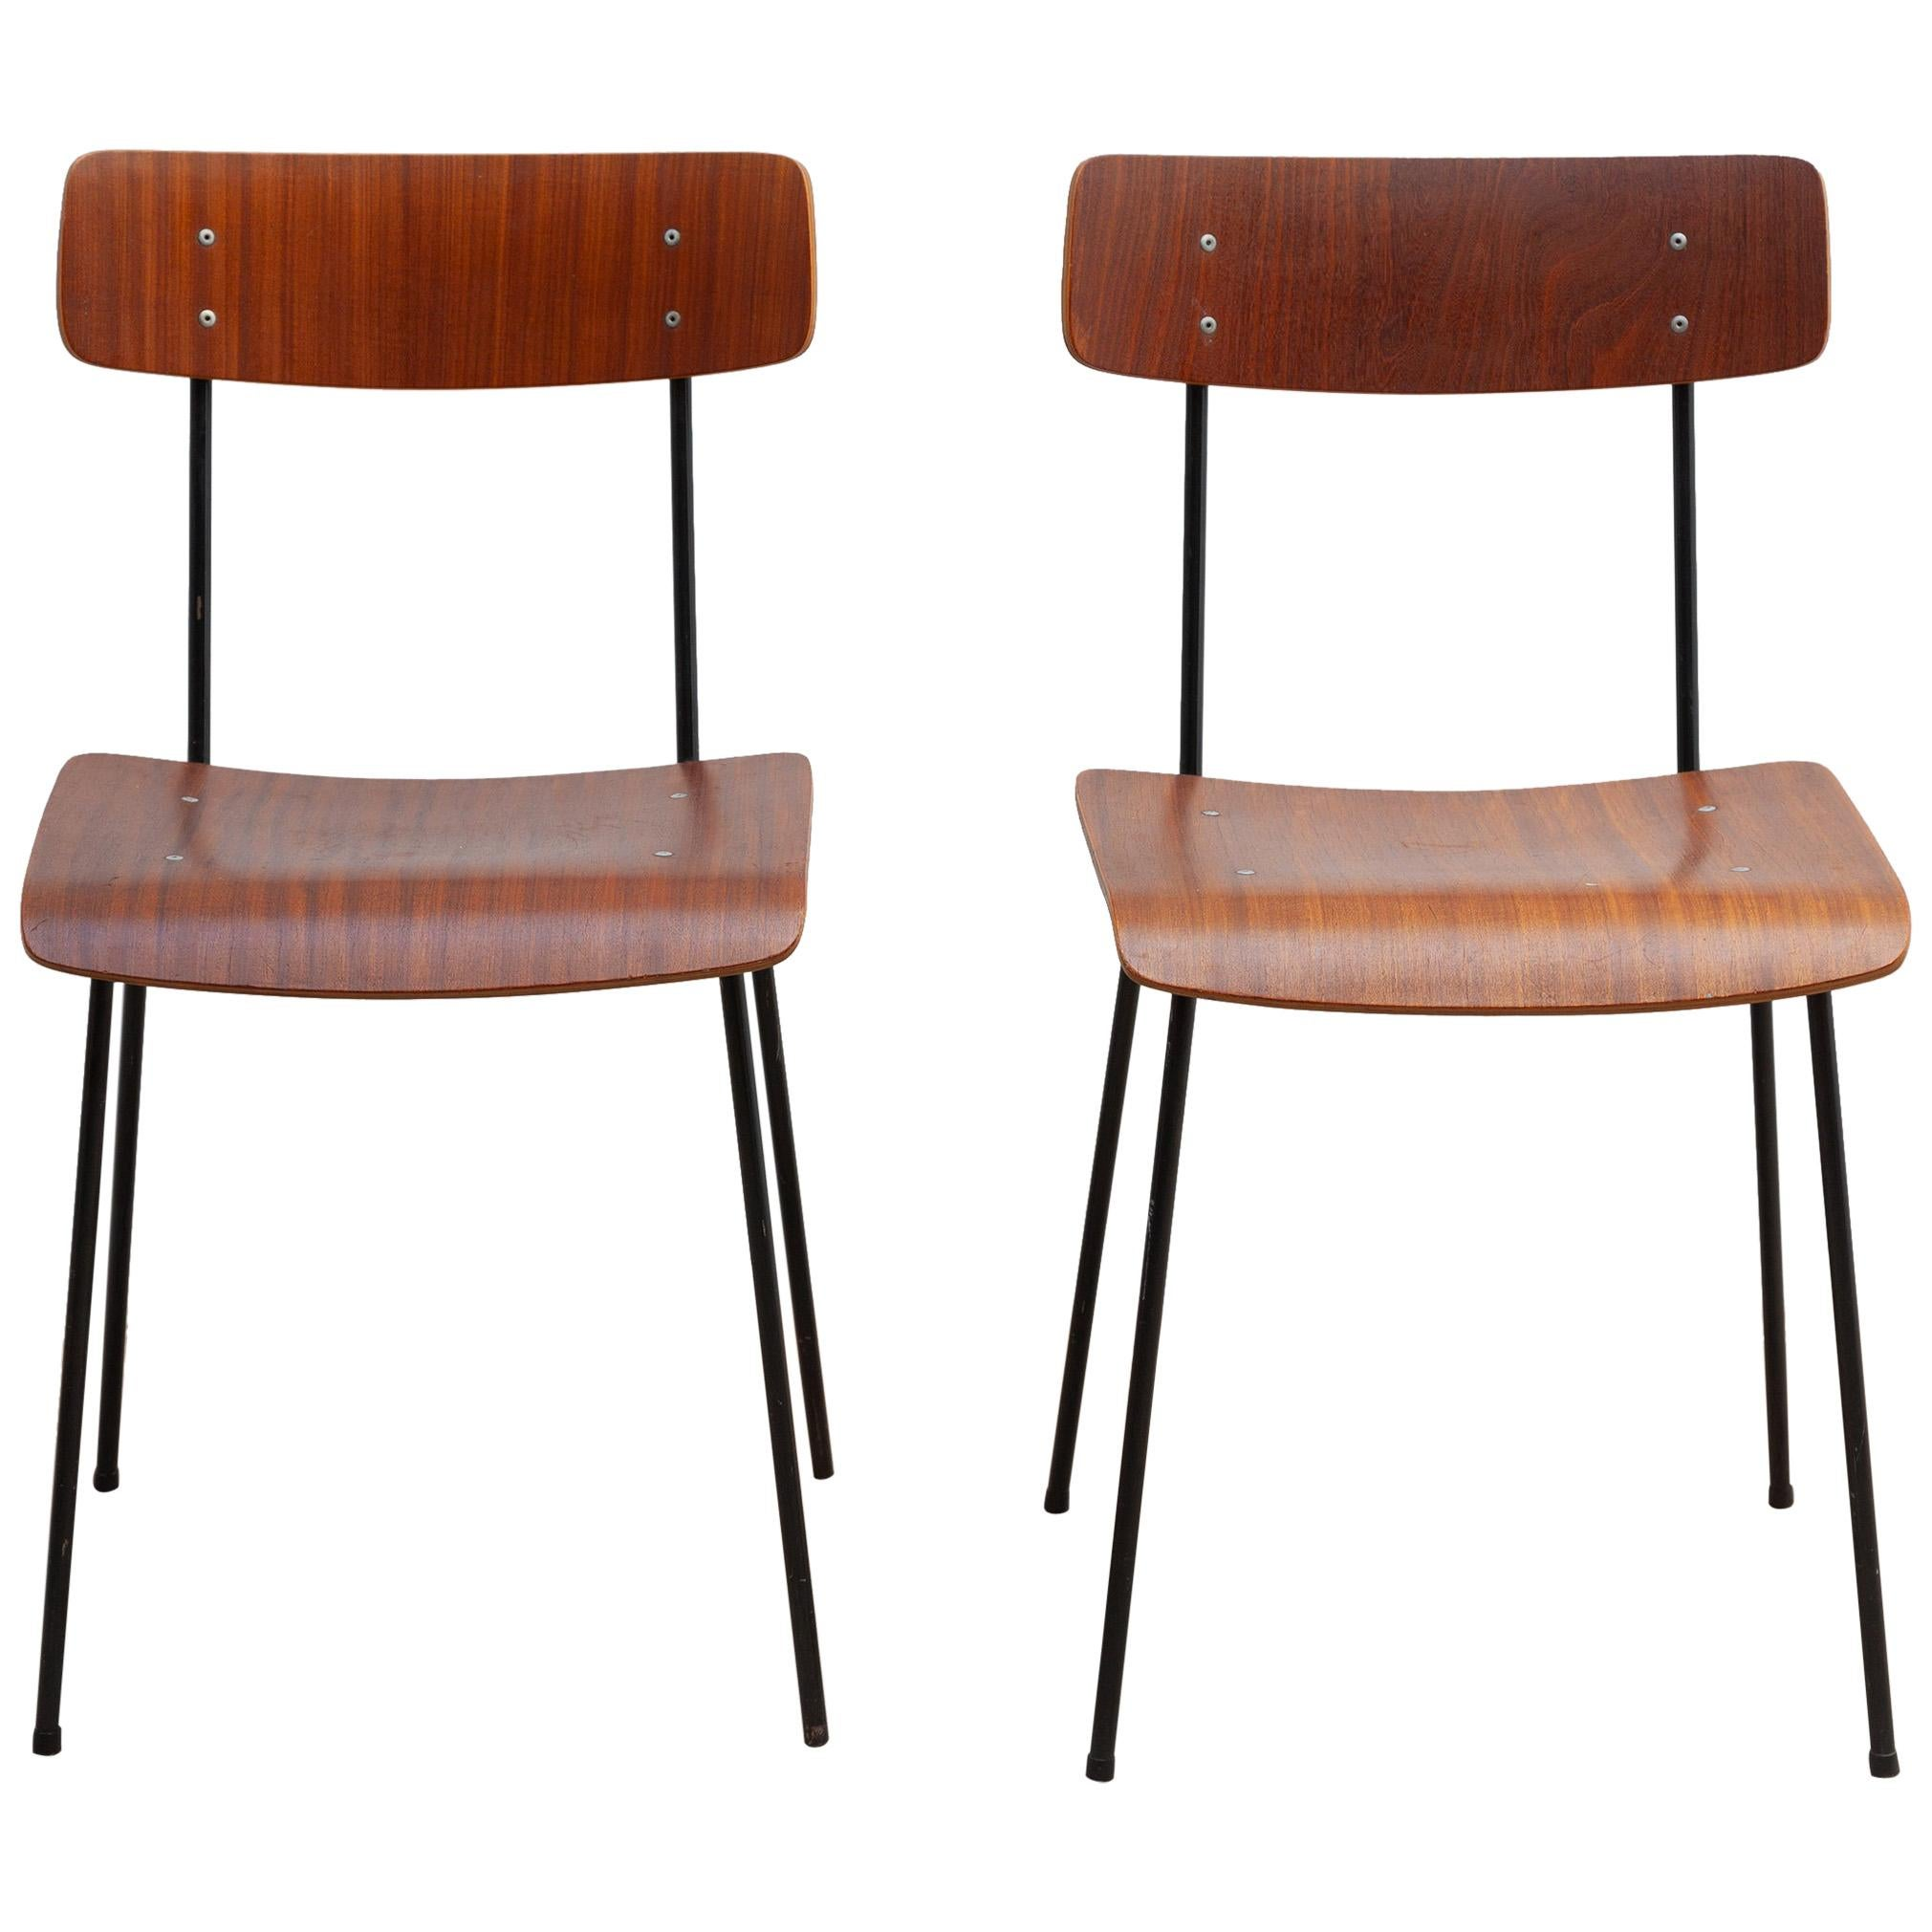 André Cordemeyer Plywood Dining Chairs for Gispen, 1959